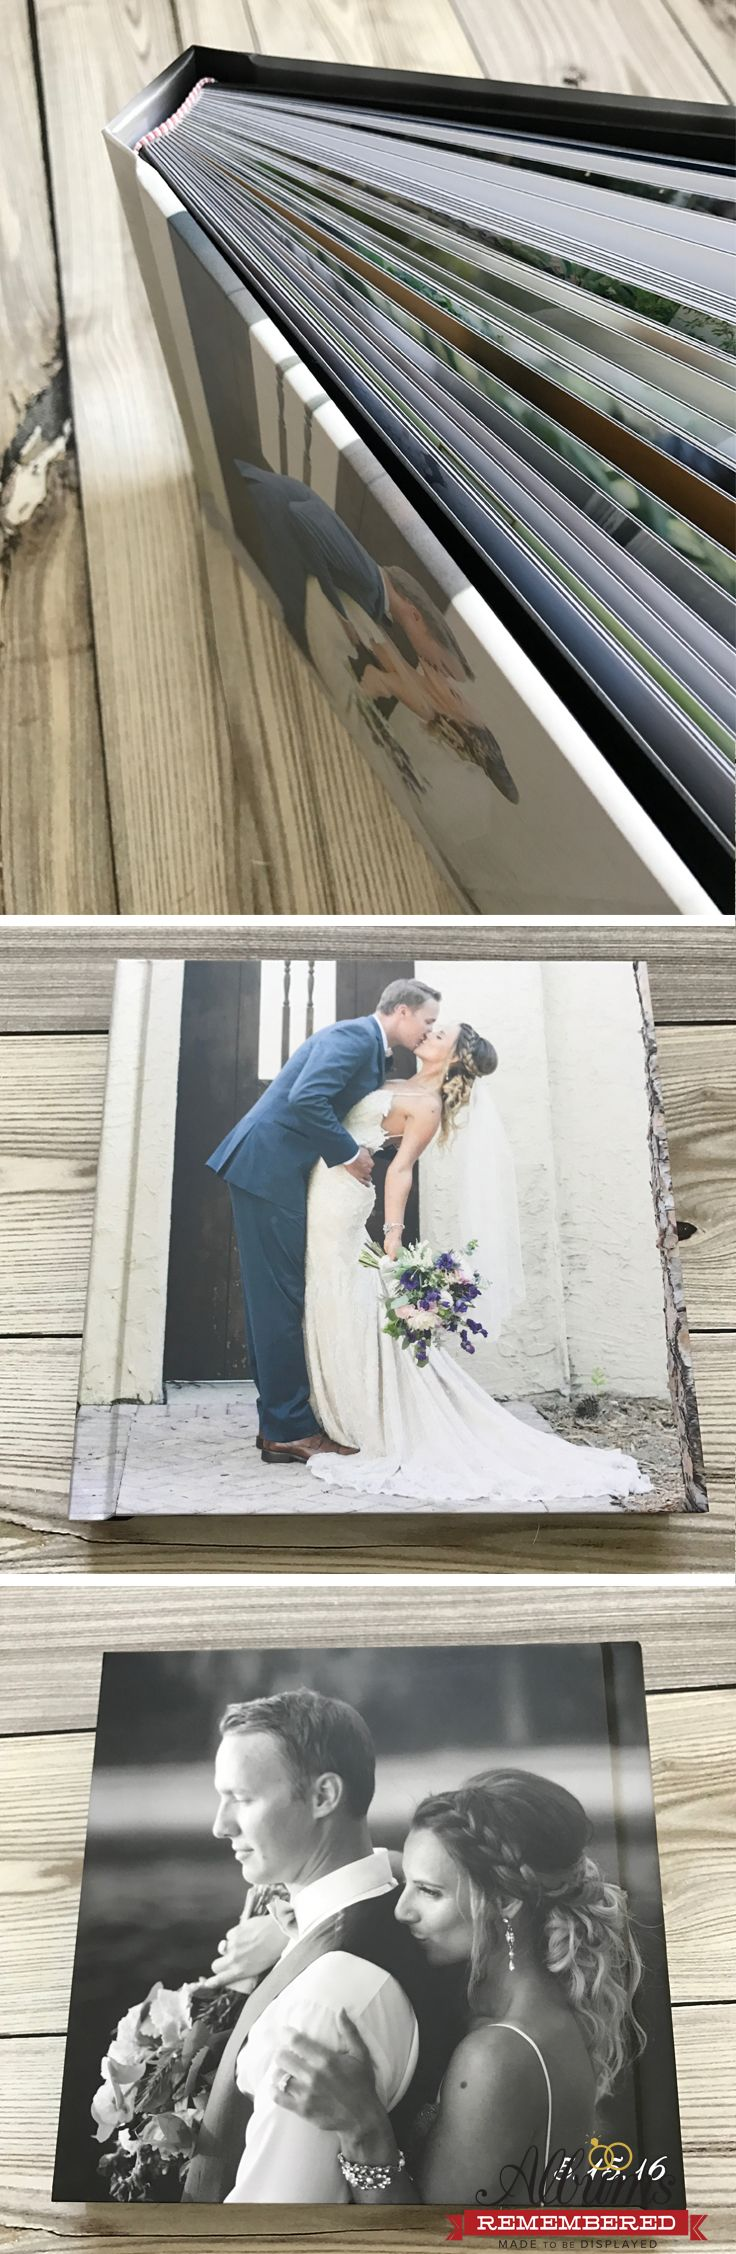 Photo wrap cover wedding album with free design service and unlimited revisions. Visit our website www.albumsremembered.com for all the promos!